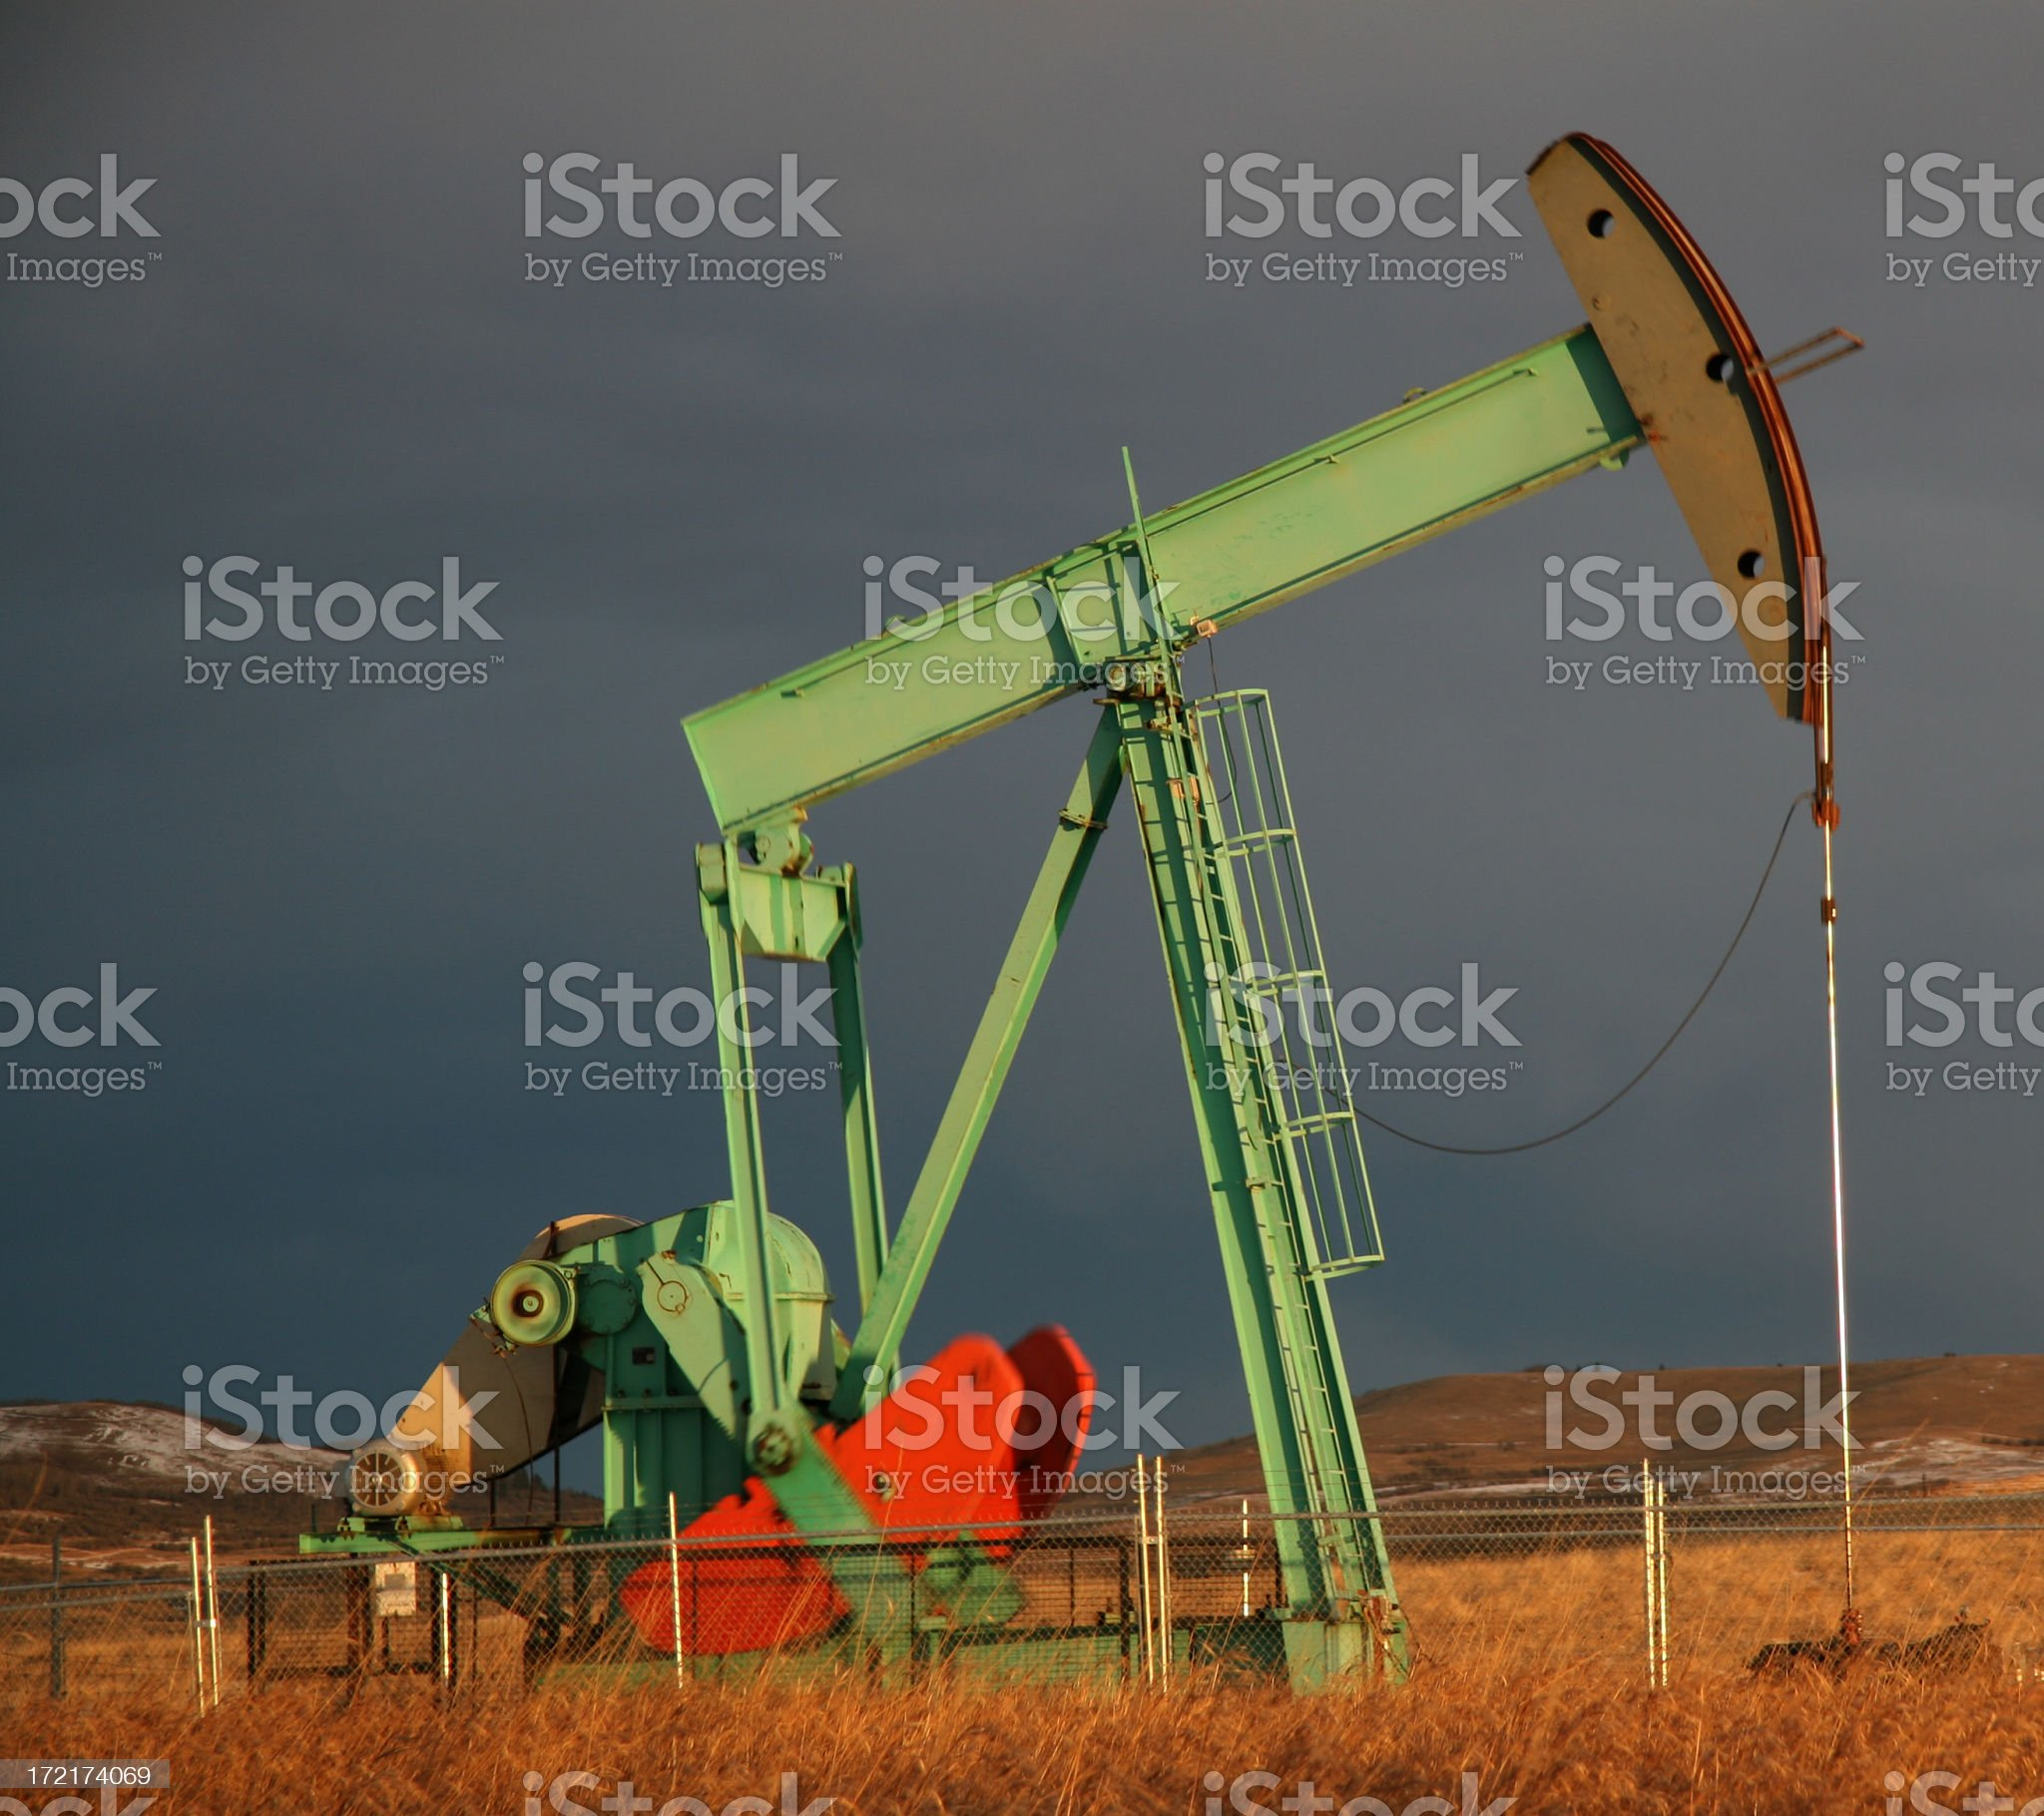 Square Image of a Pumpjack royalty-free stock photo